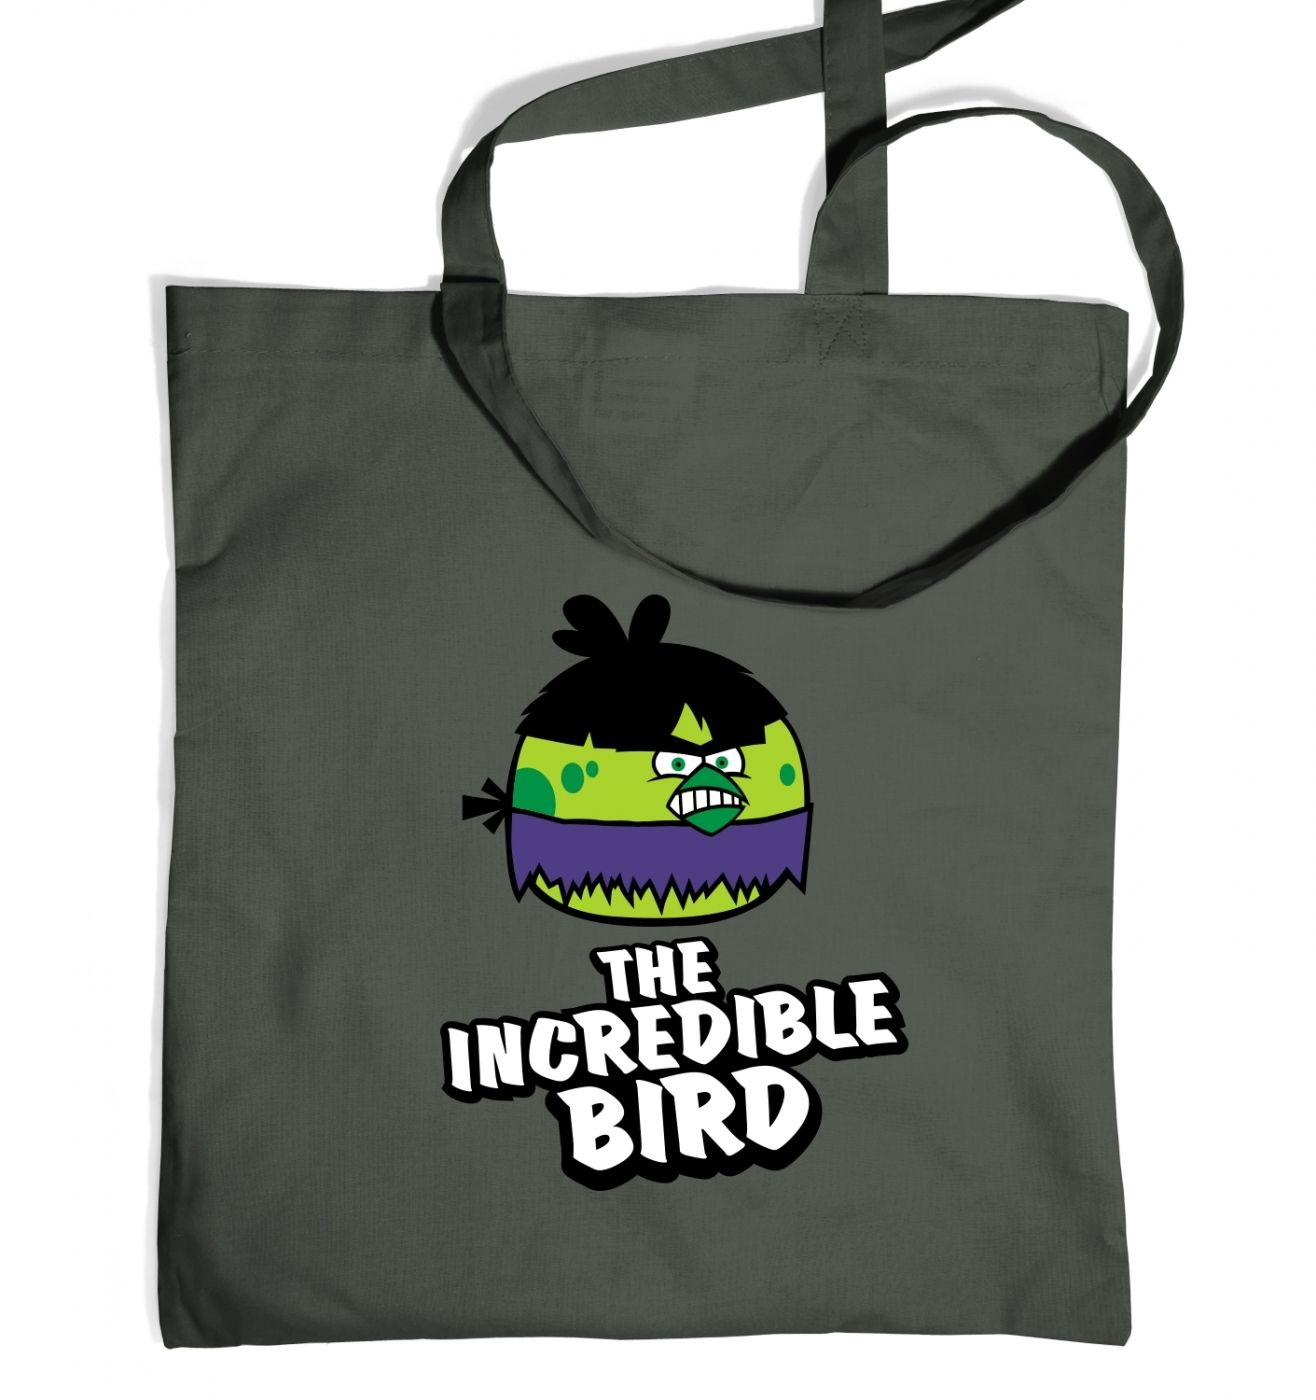 Incredible Bird Tote Bag Inspired By Avengers, Angry Birds And The Hulk